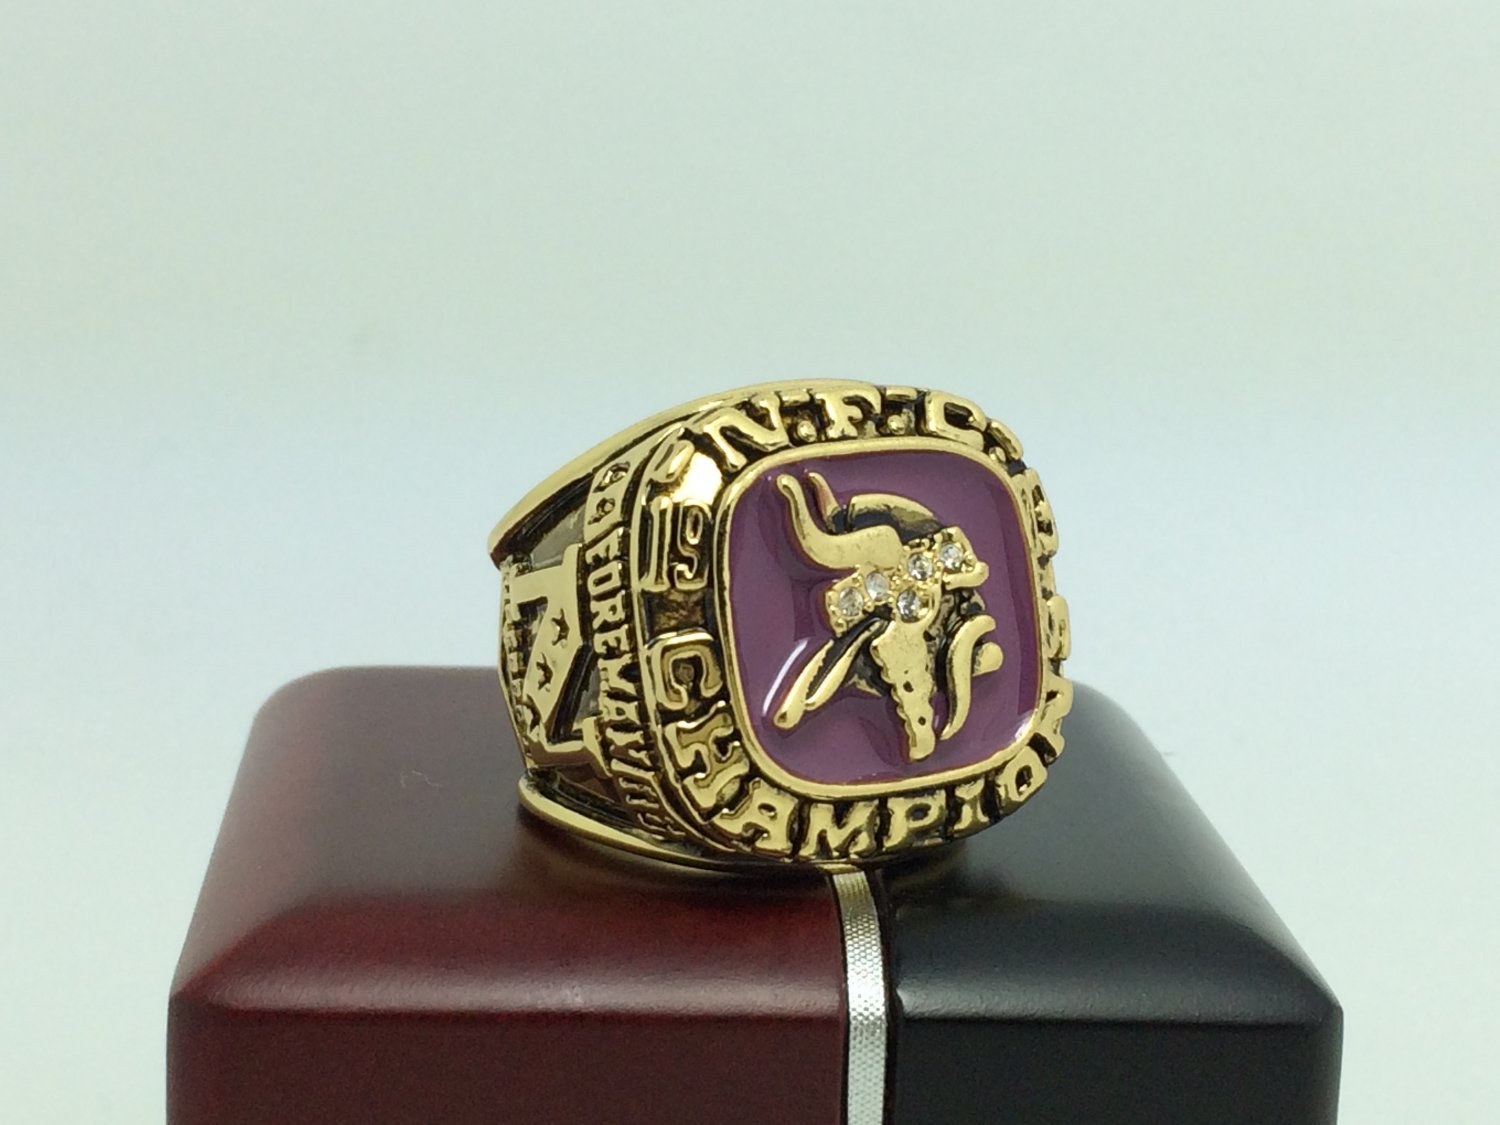 1973 Minnesota Vikings AFC super bowl Championship Ring 11 Size With wooden box